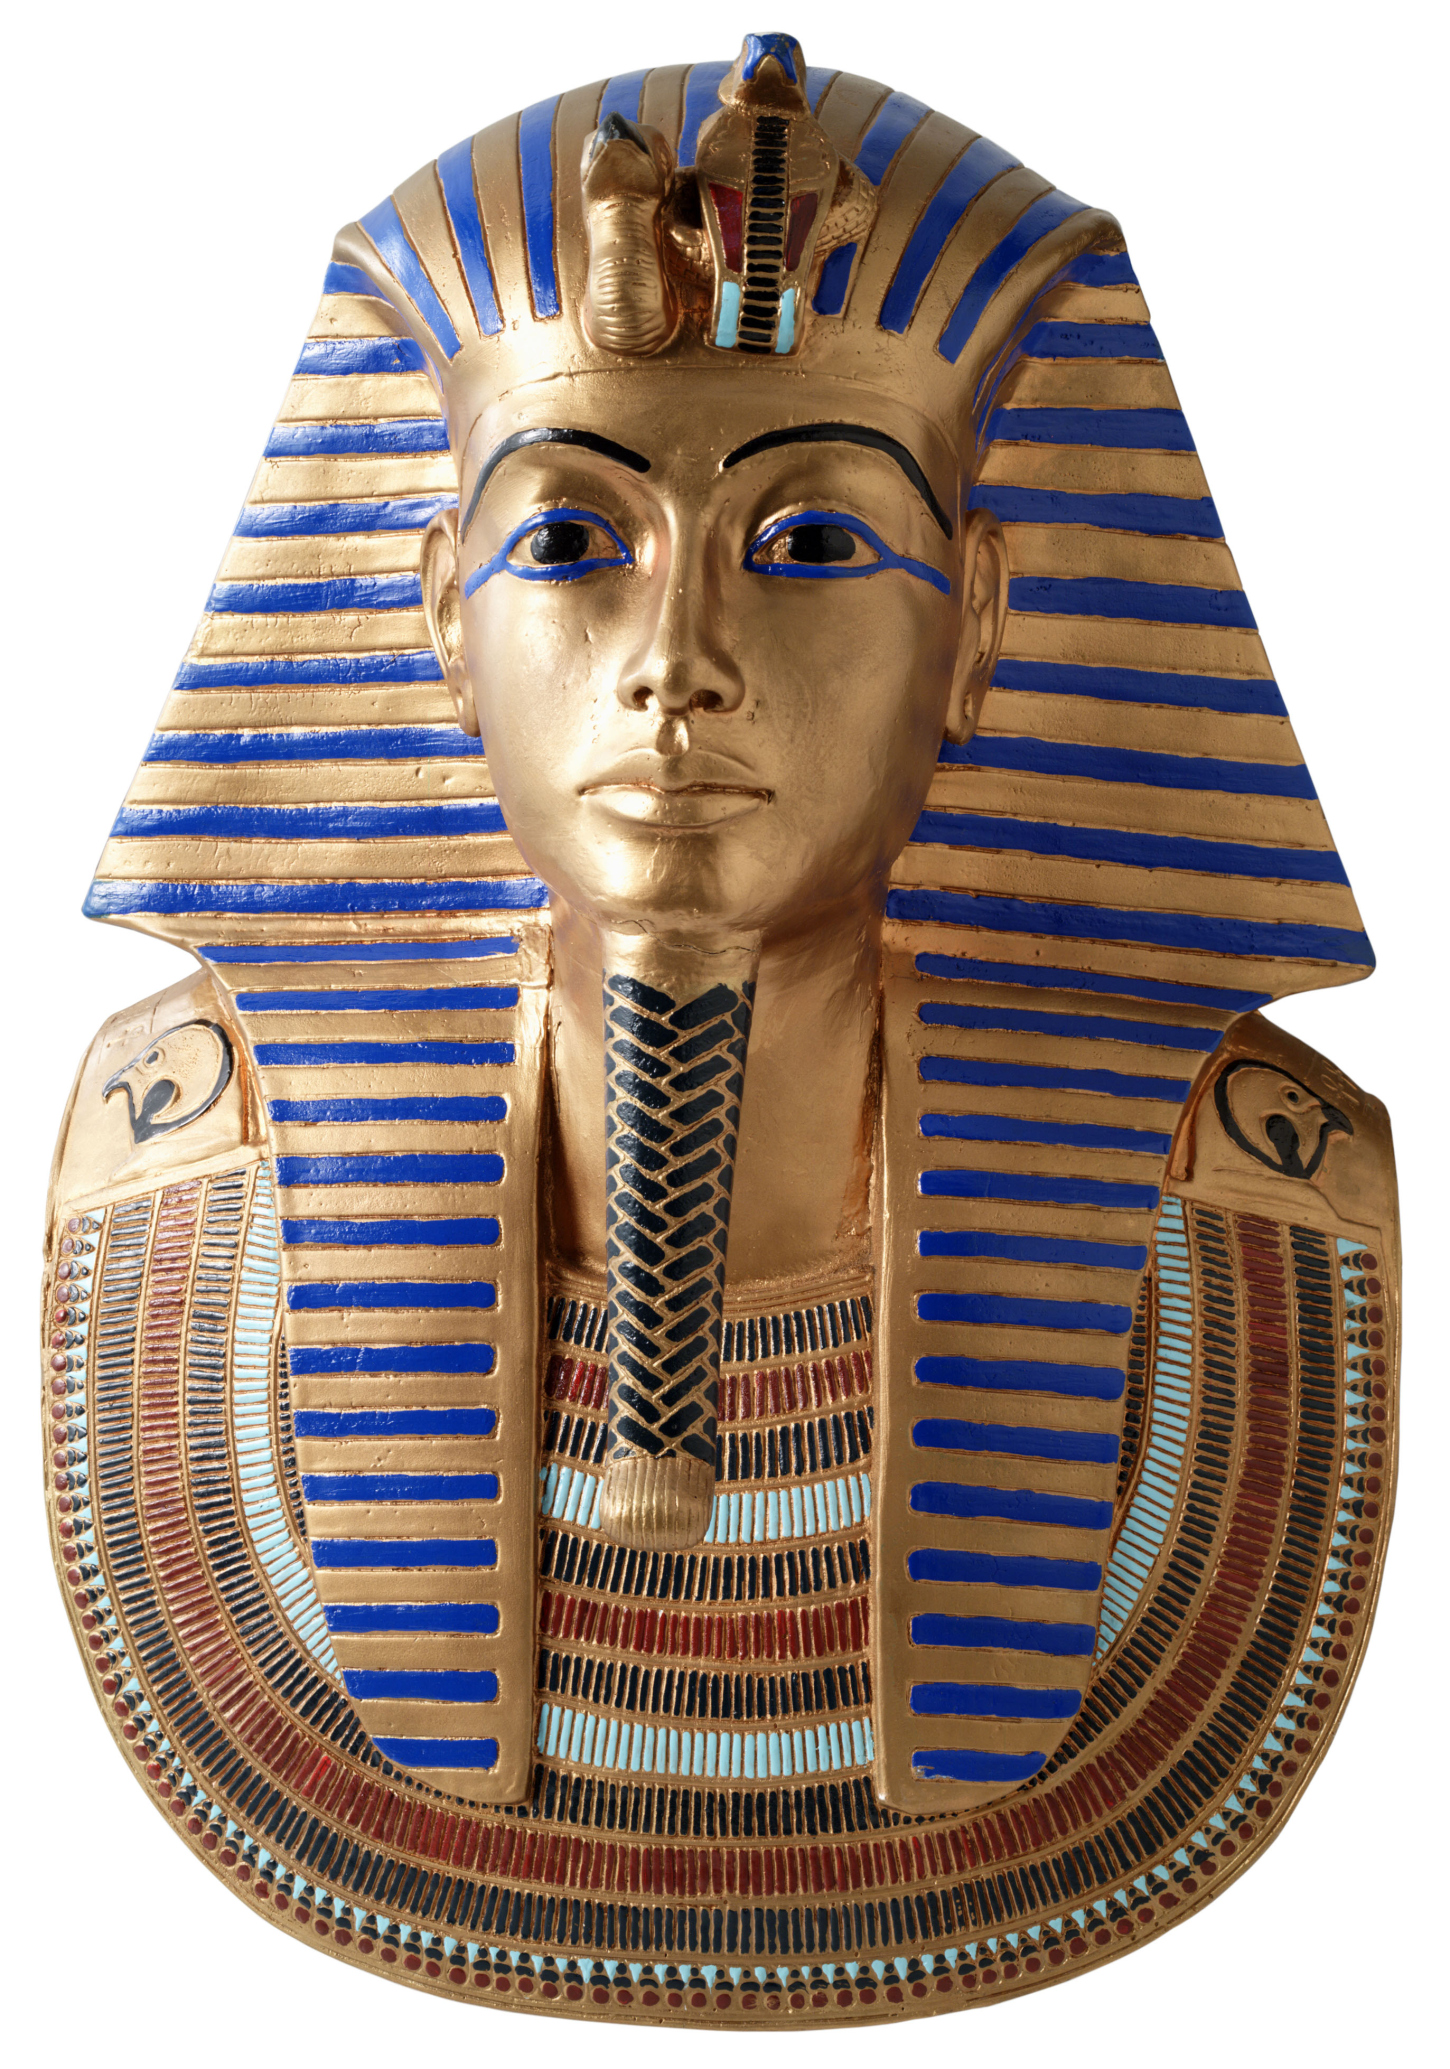 What Did We Learn About Ancient Egypt When We Found King Tut?